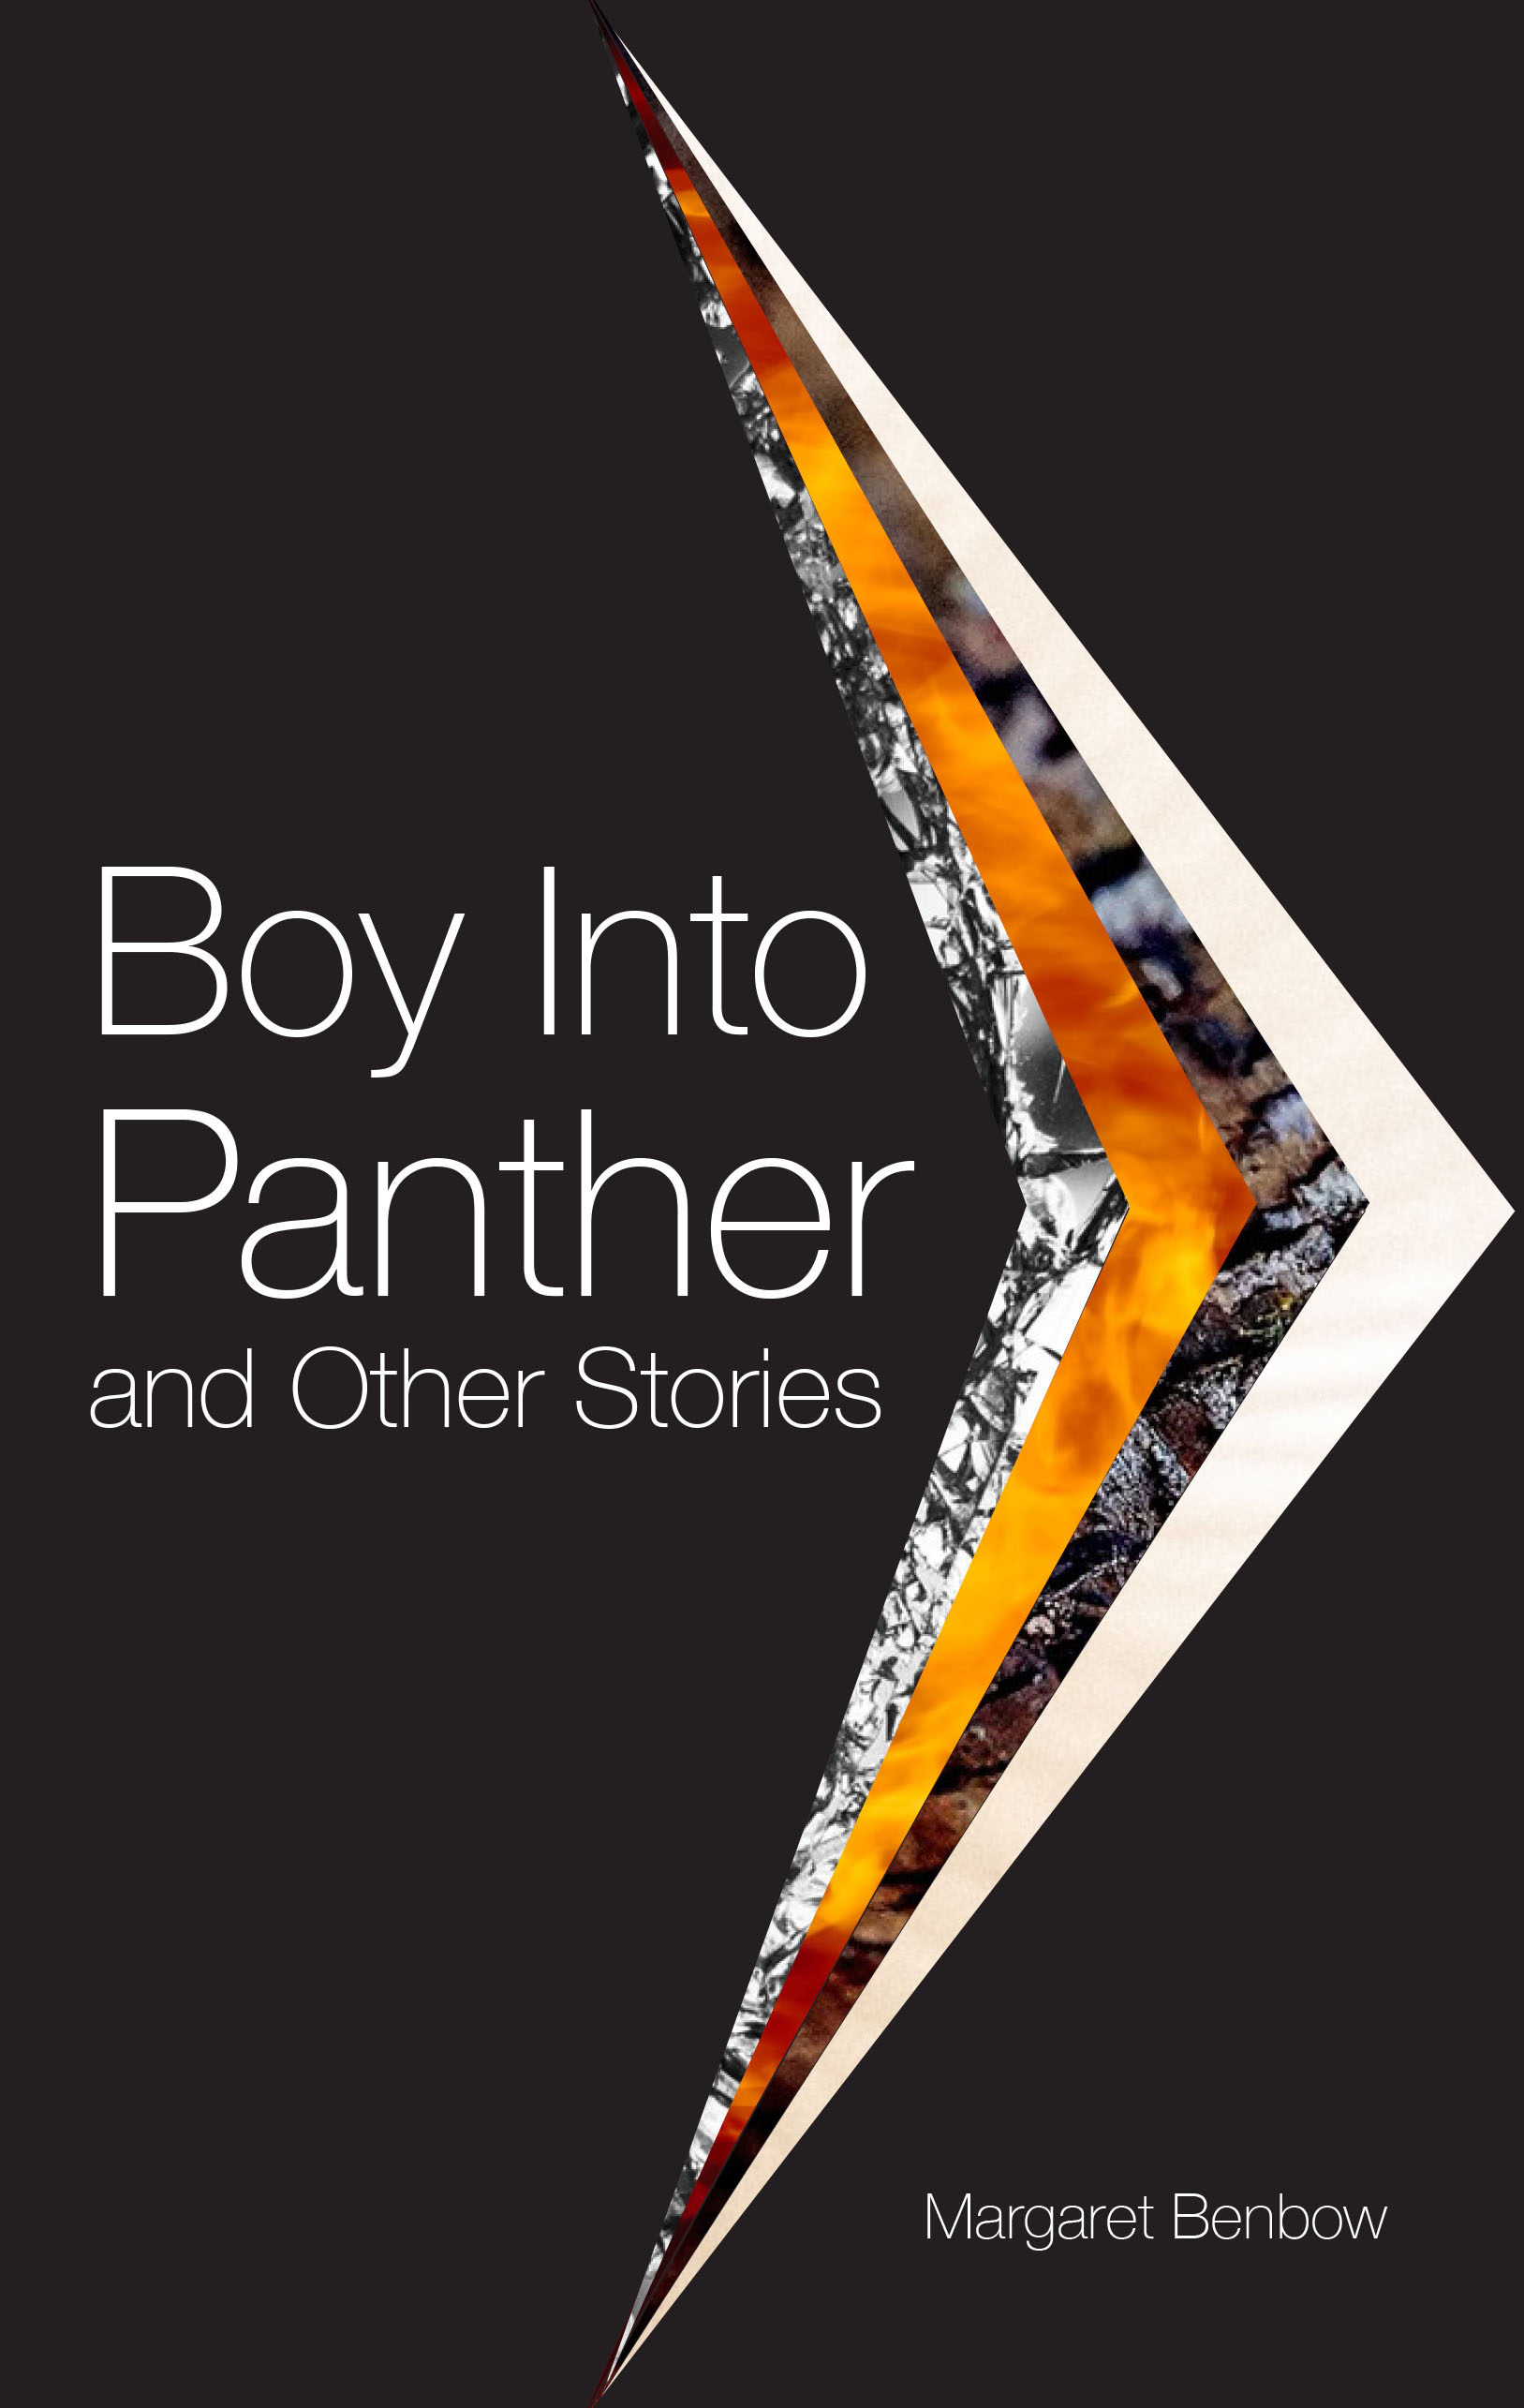 Boy into Panther and Other Stories